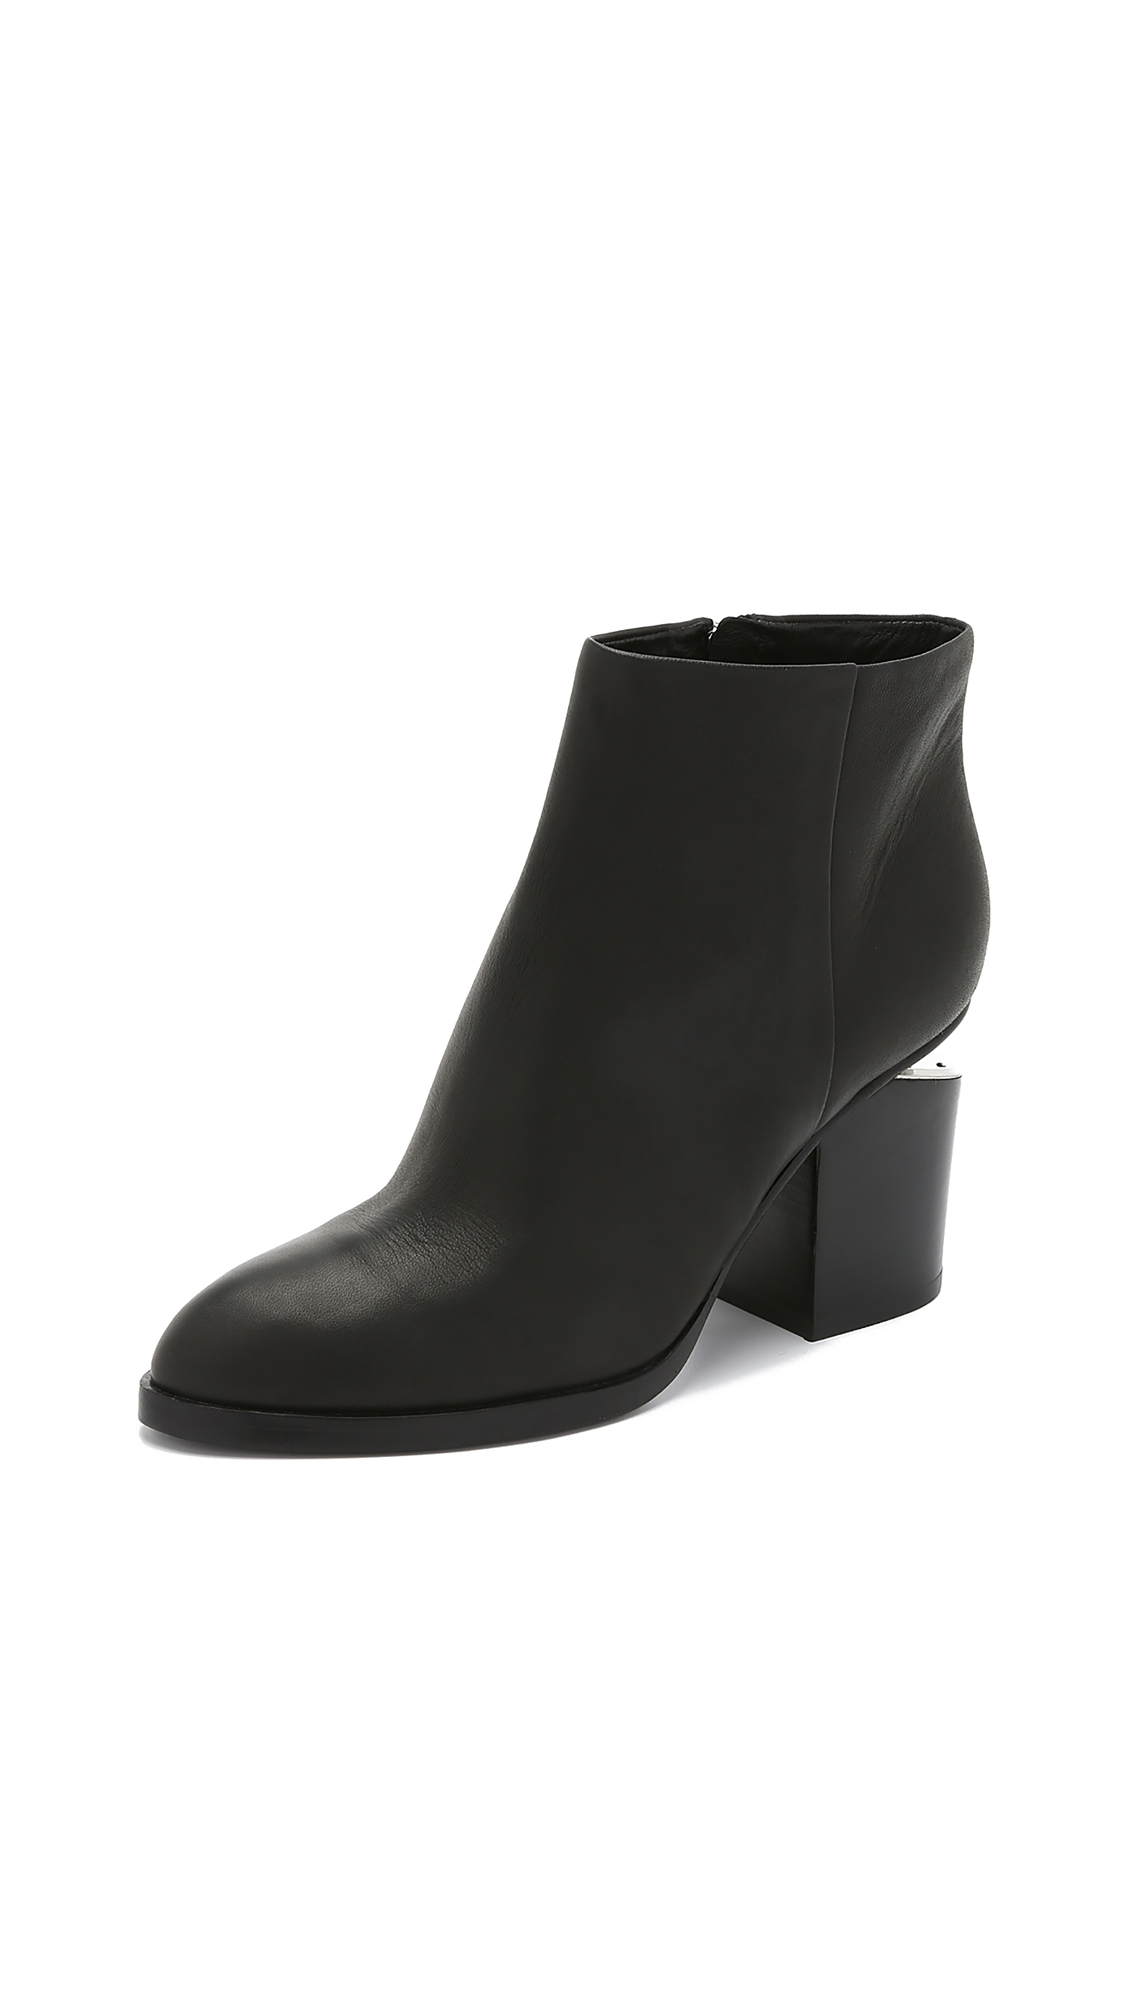 Alexander Wang Gabi Booties - Black/Rhodium